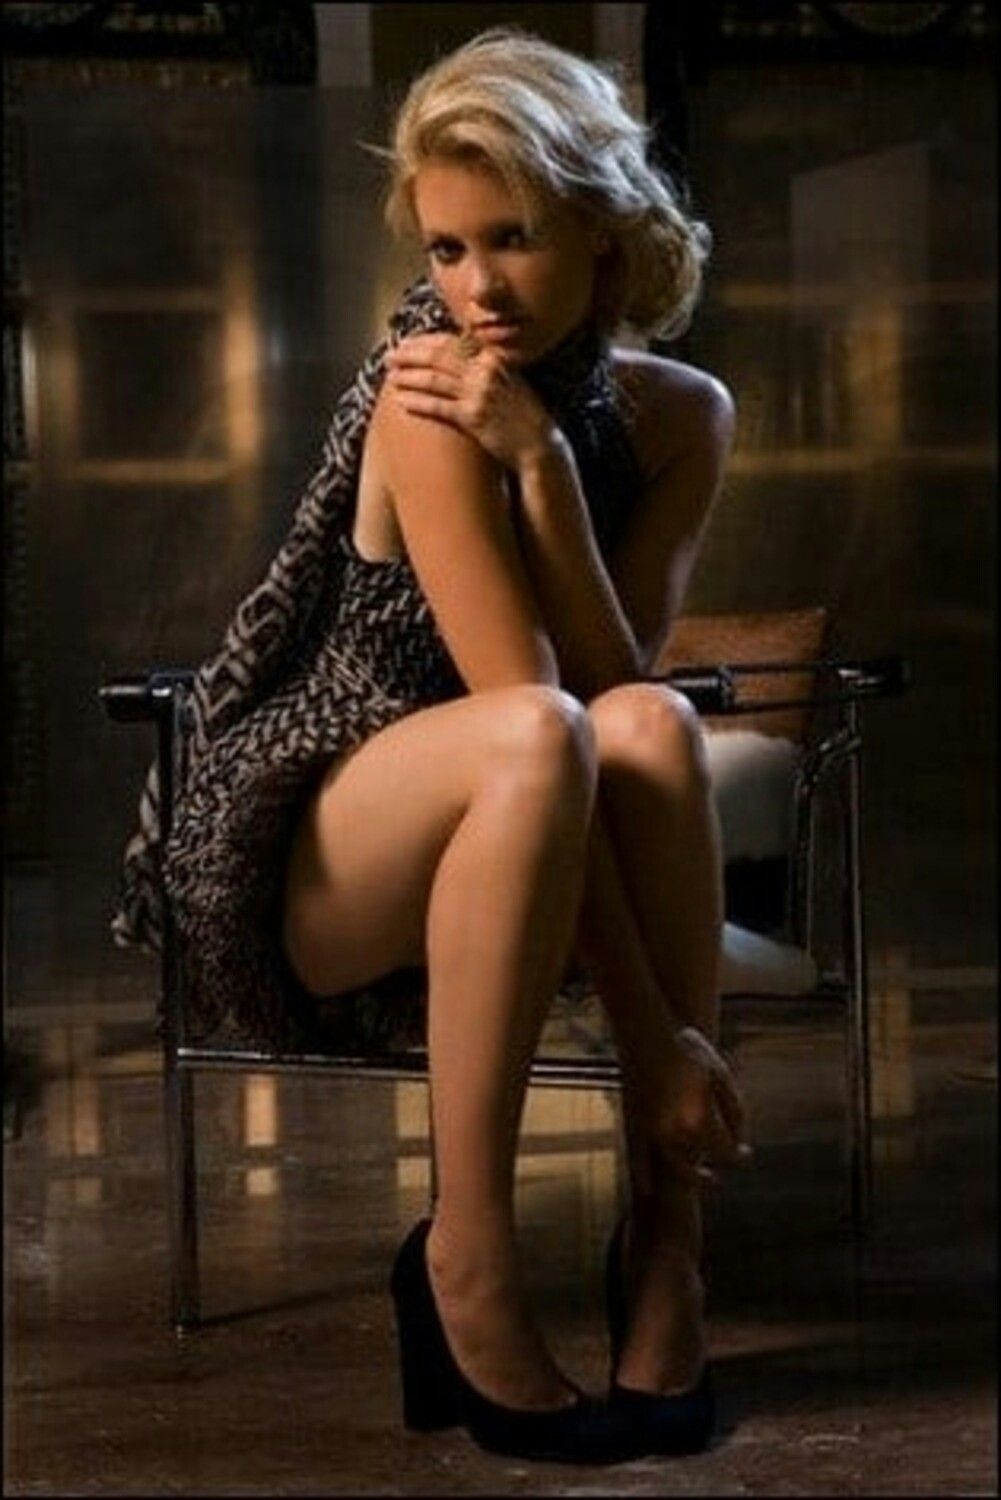 Amy Smart Hot Images amy smart (tumblr). | amy smart, gorgeous blonde, woman movie